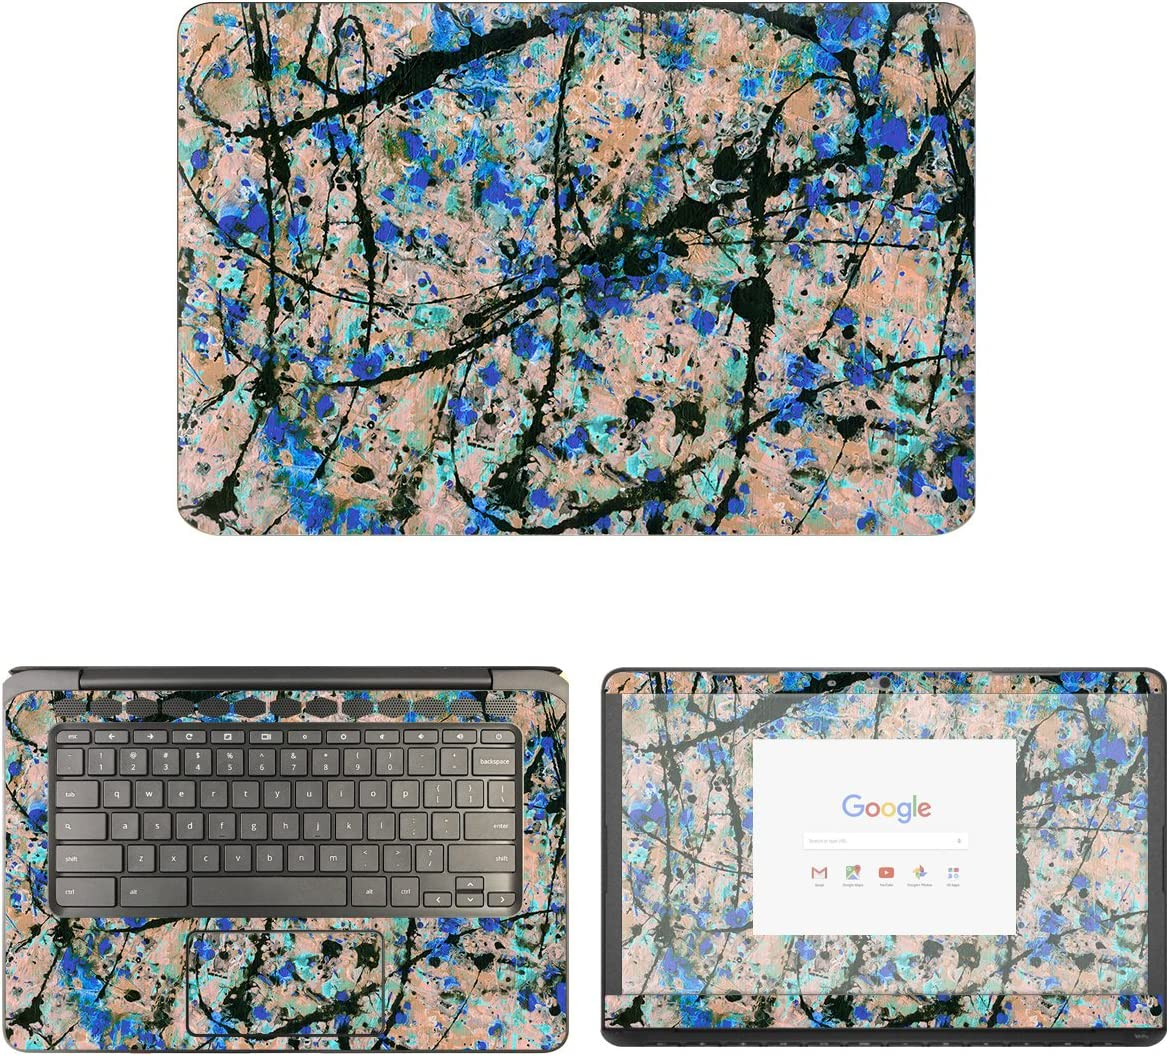 decalrus - Protective Decal Skin Sticker for HP ChromeBook 14-CA061DX (14